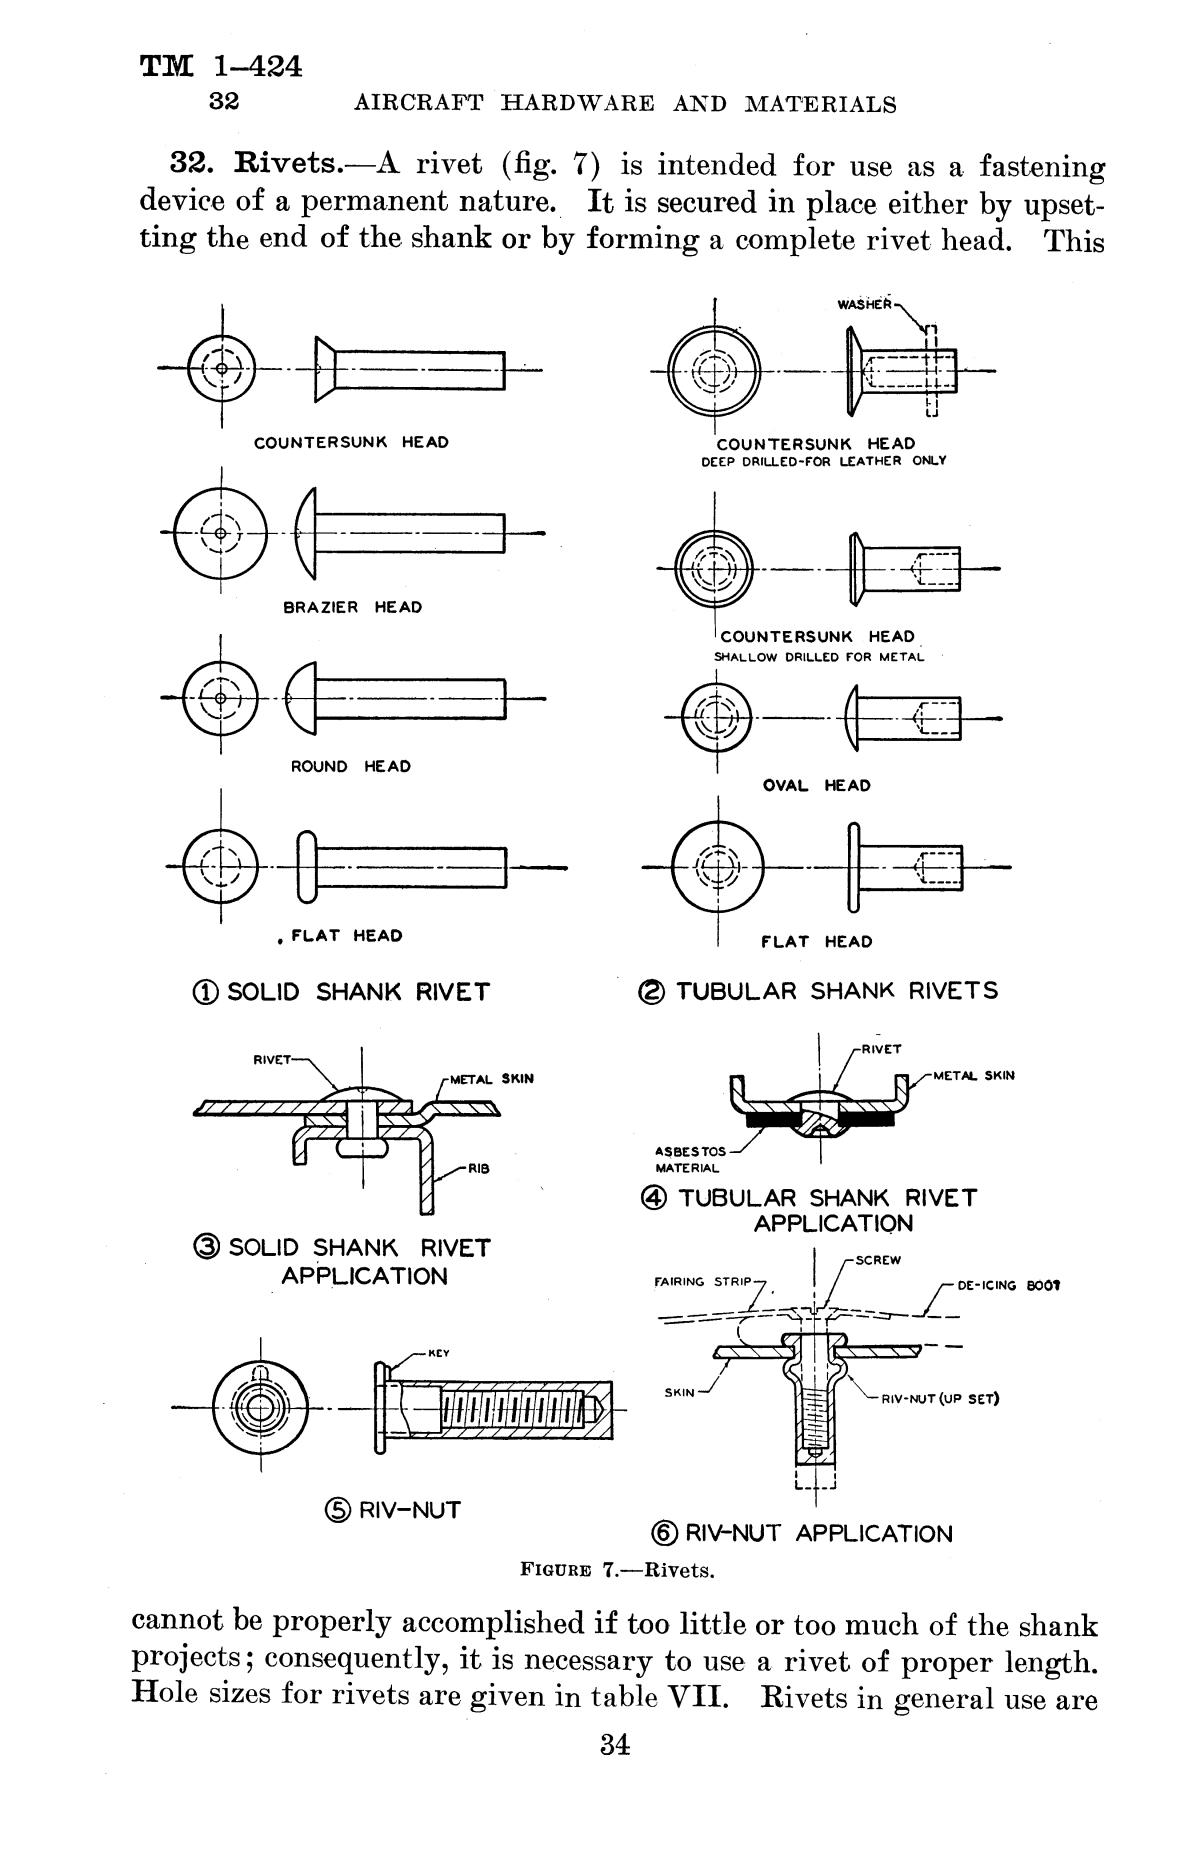 Aircraft hardware and materials  - Page 34 - Digital Library